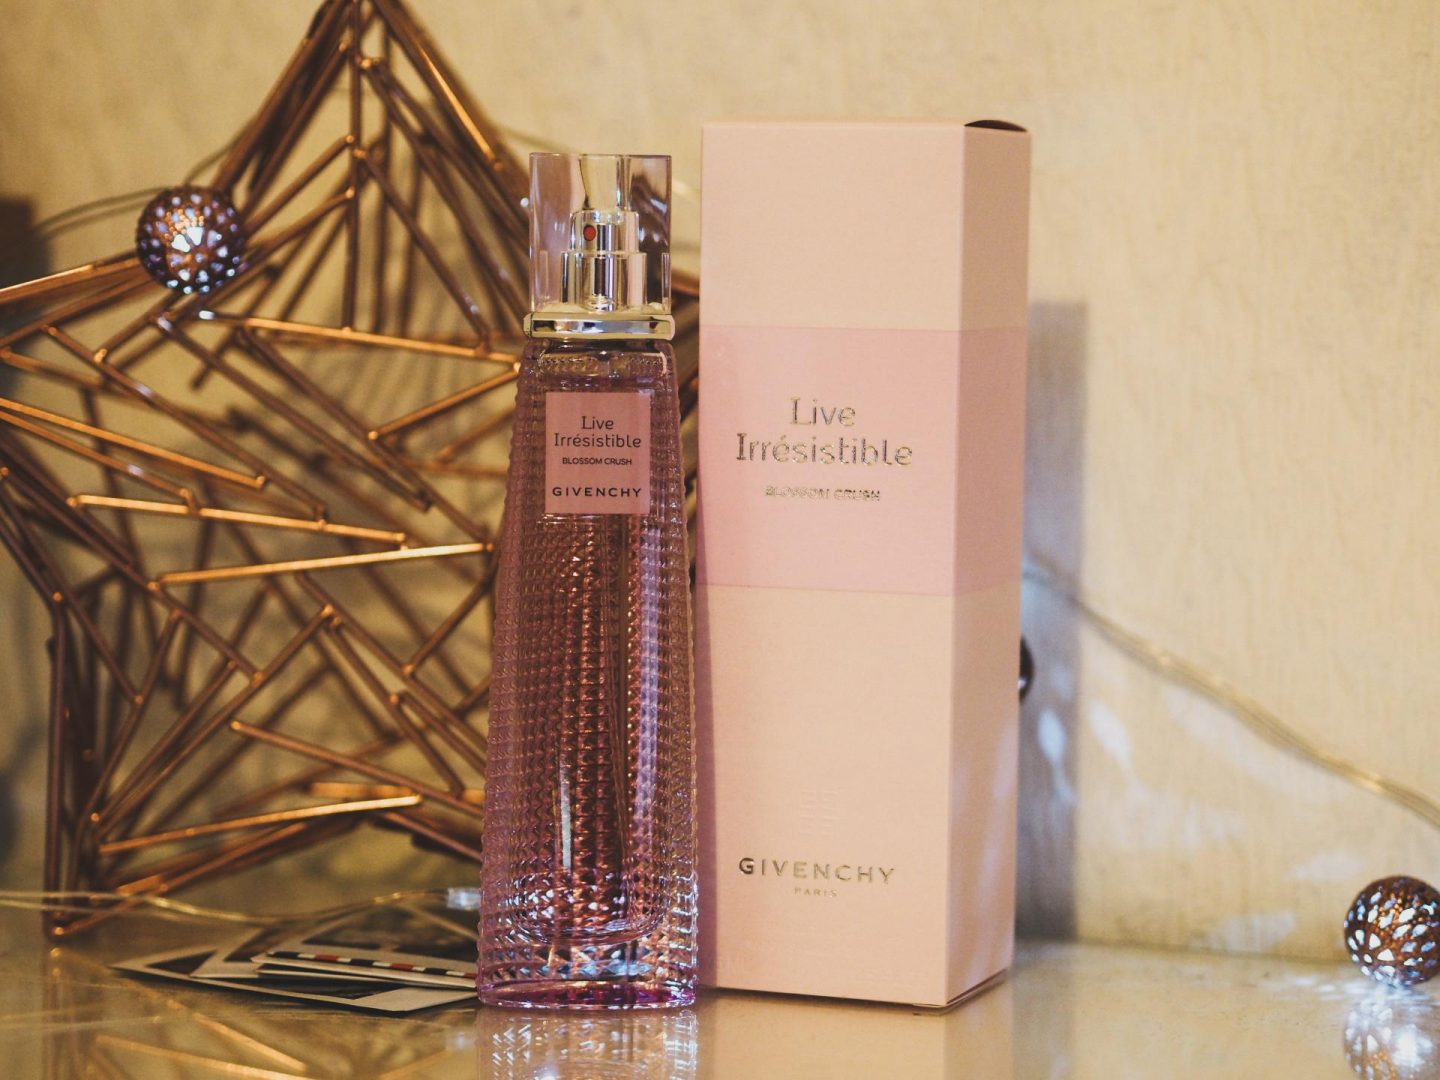 Win a Bottle of Givenchy Live Irresistible Perfume - 75ml - Rachel Nicole UK Blogger